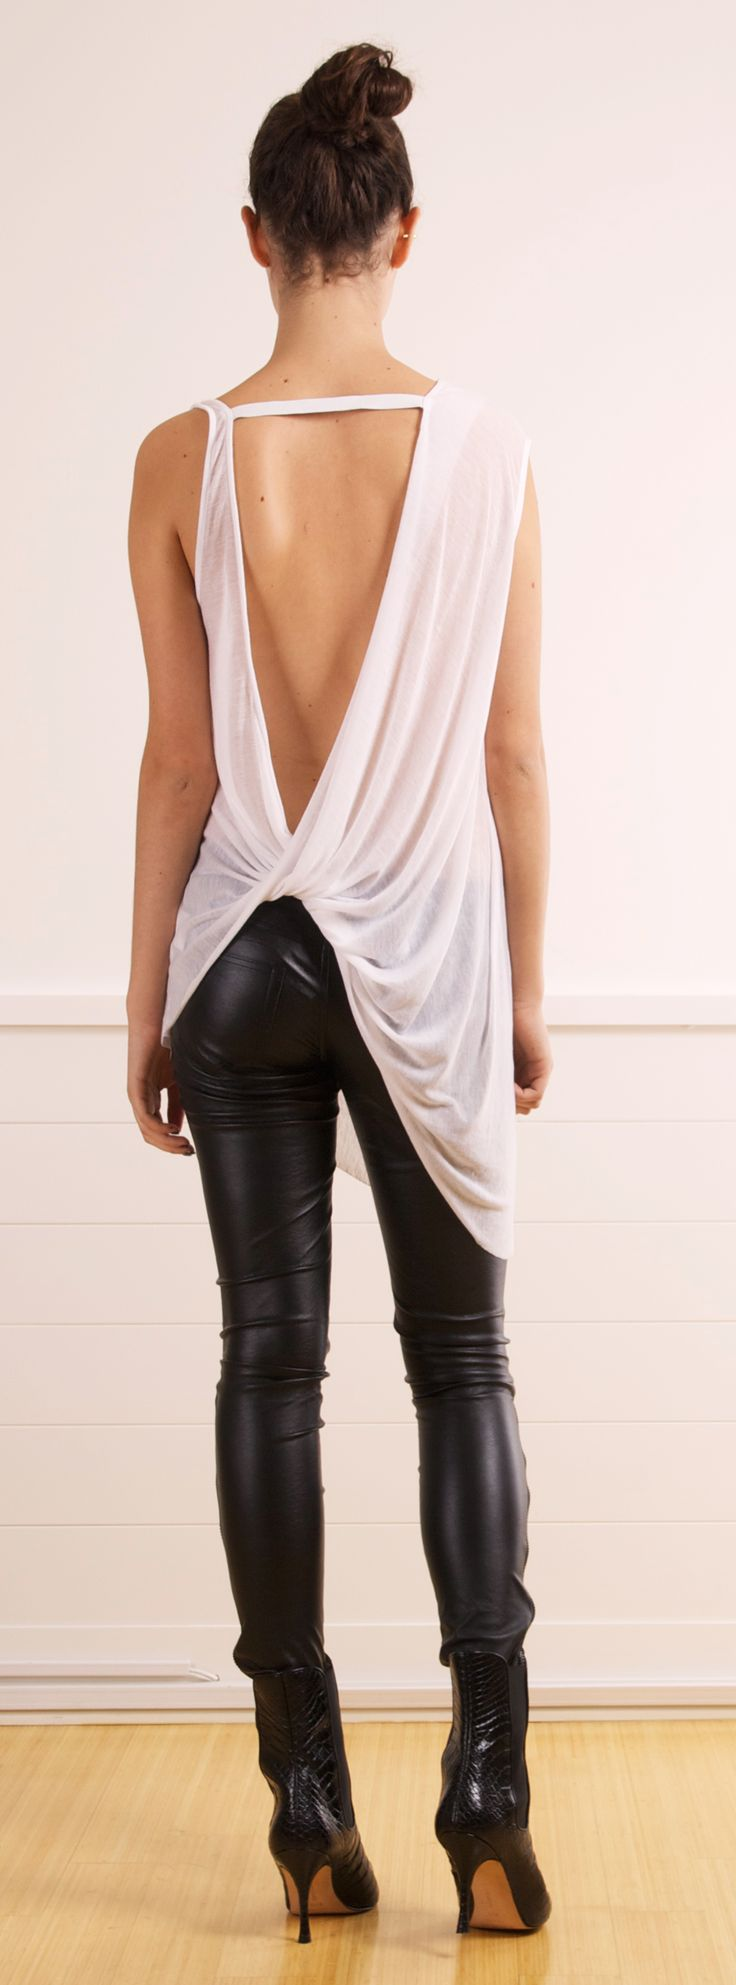 "HELMUT LANG TANK @SHOP-HERS. The flowing tank is an interesting contrast to the form fitting leather pants. It is a great outfit for ""ladies night"". All potential suitors, please form a queue!!!"